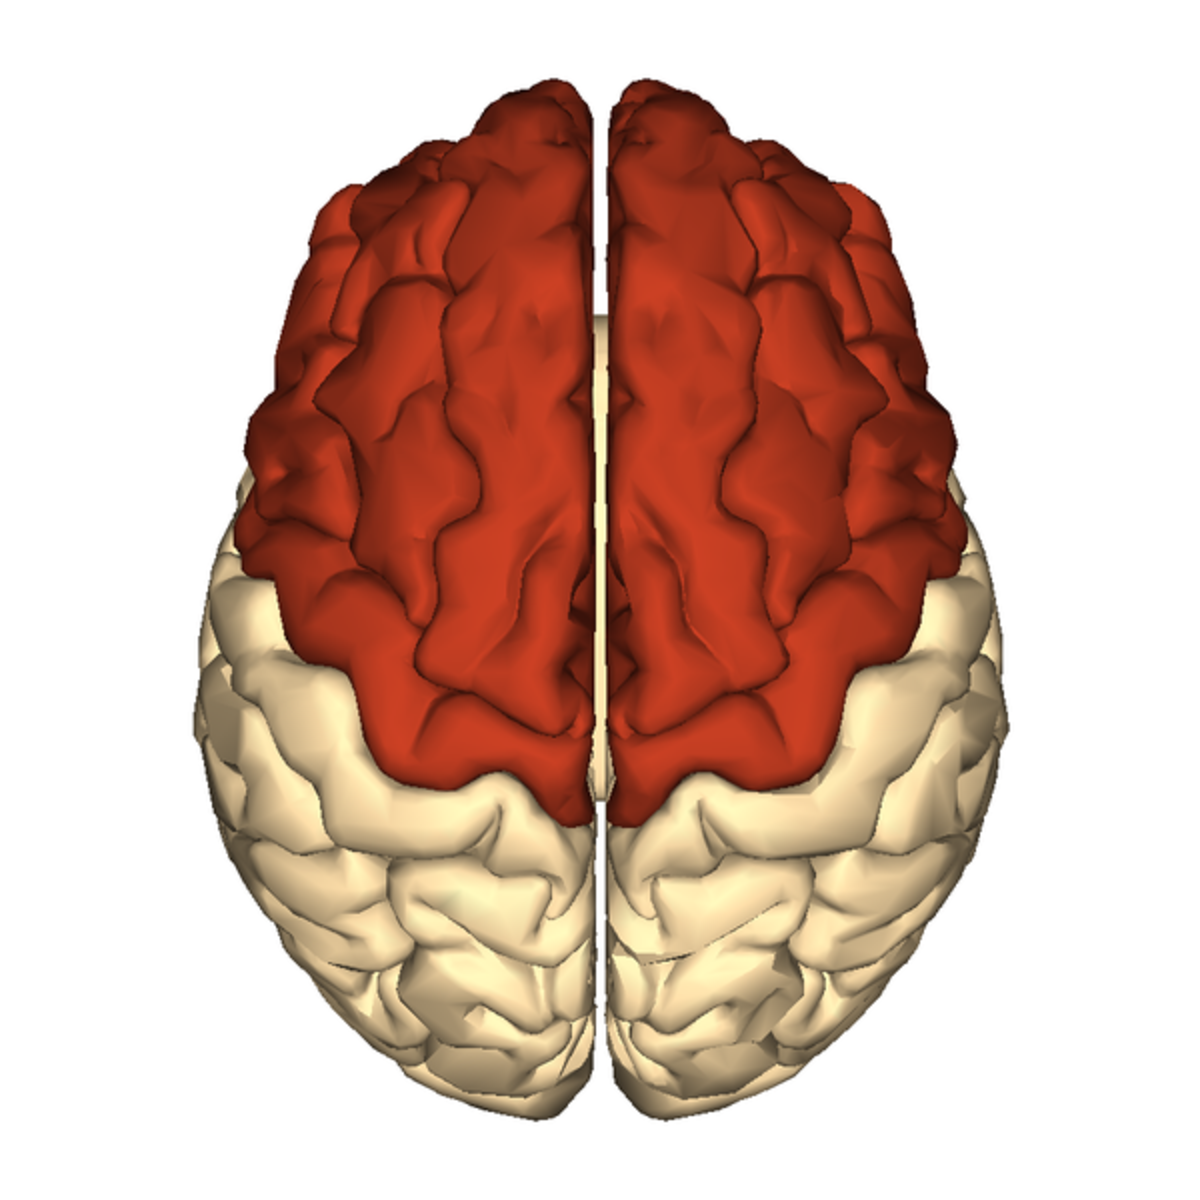 View of the frontal lobes of the human brain from above